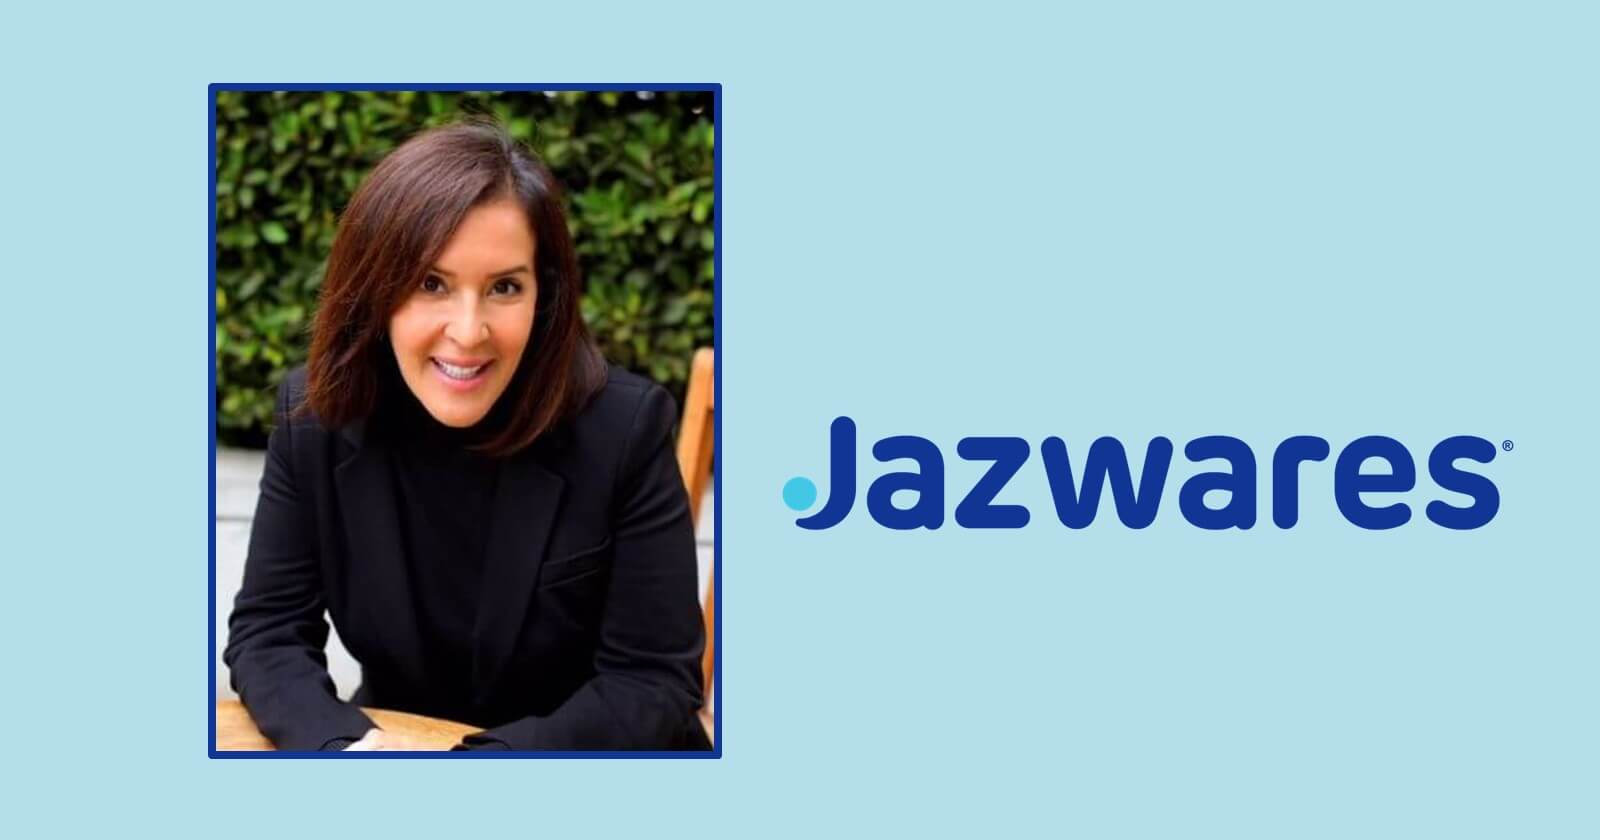 Jazwares Appoints Sara Rosales as Senior Vice President of Communications image